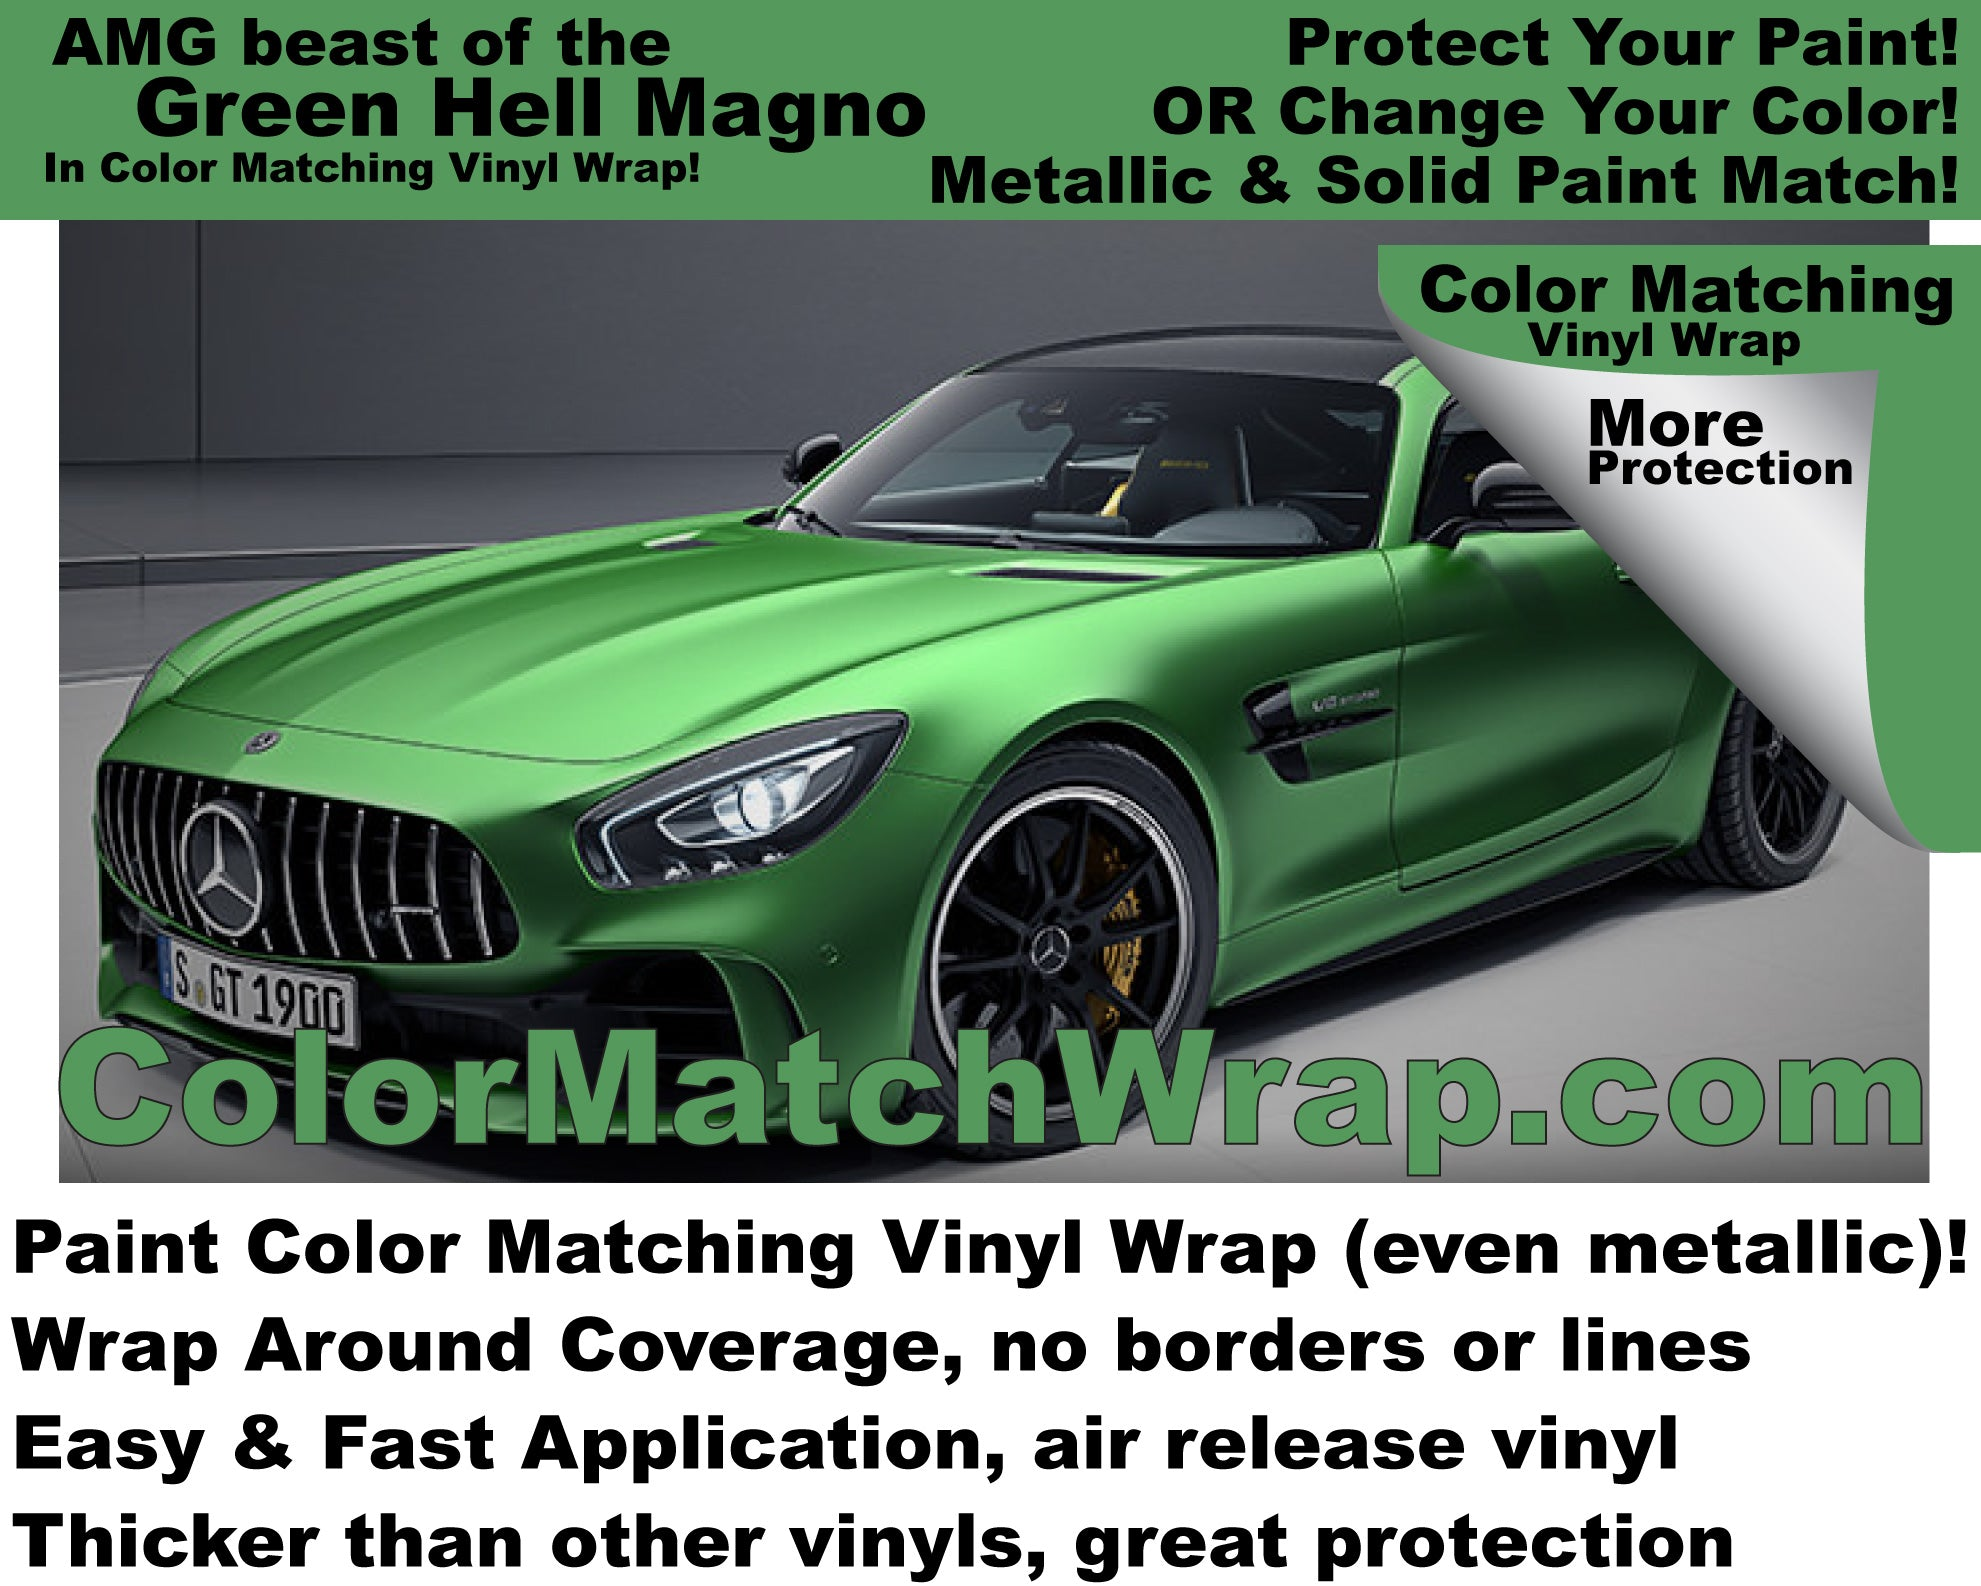 AMG Beast of the Green Hell Magno in Vinyl Wrap!